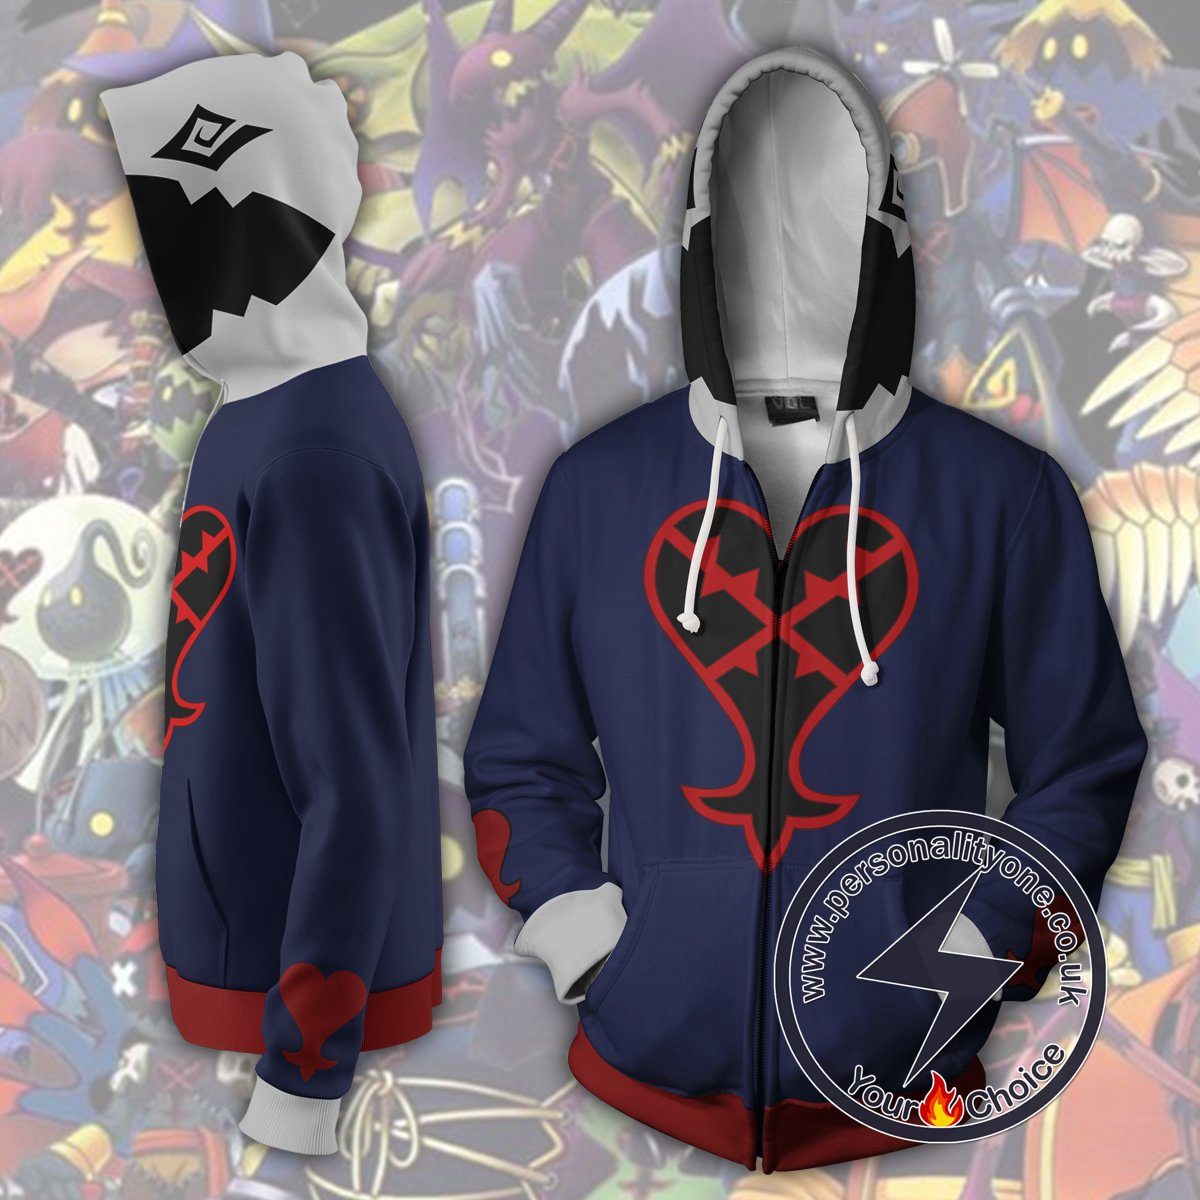 Kingdom Hearts Hoodie - Heartless Jacket